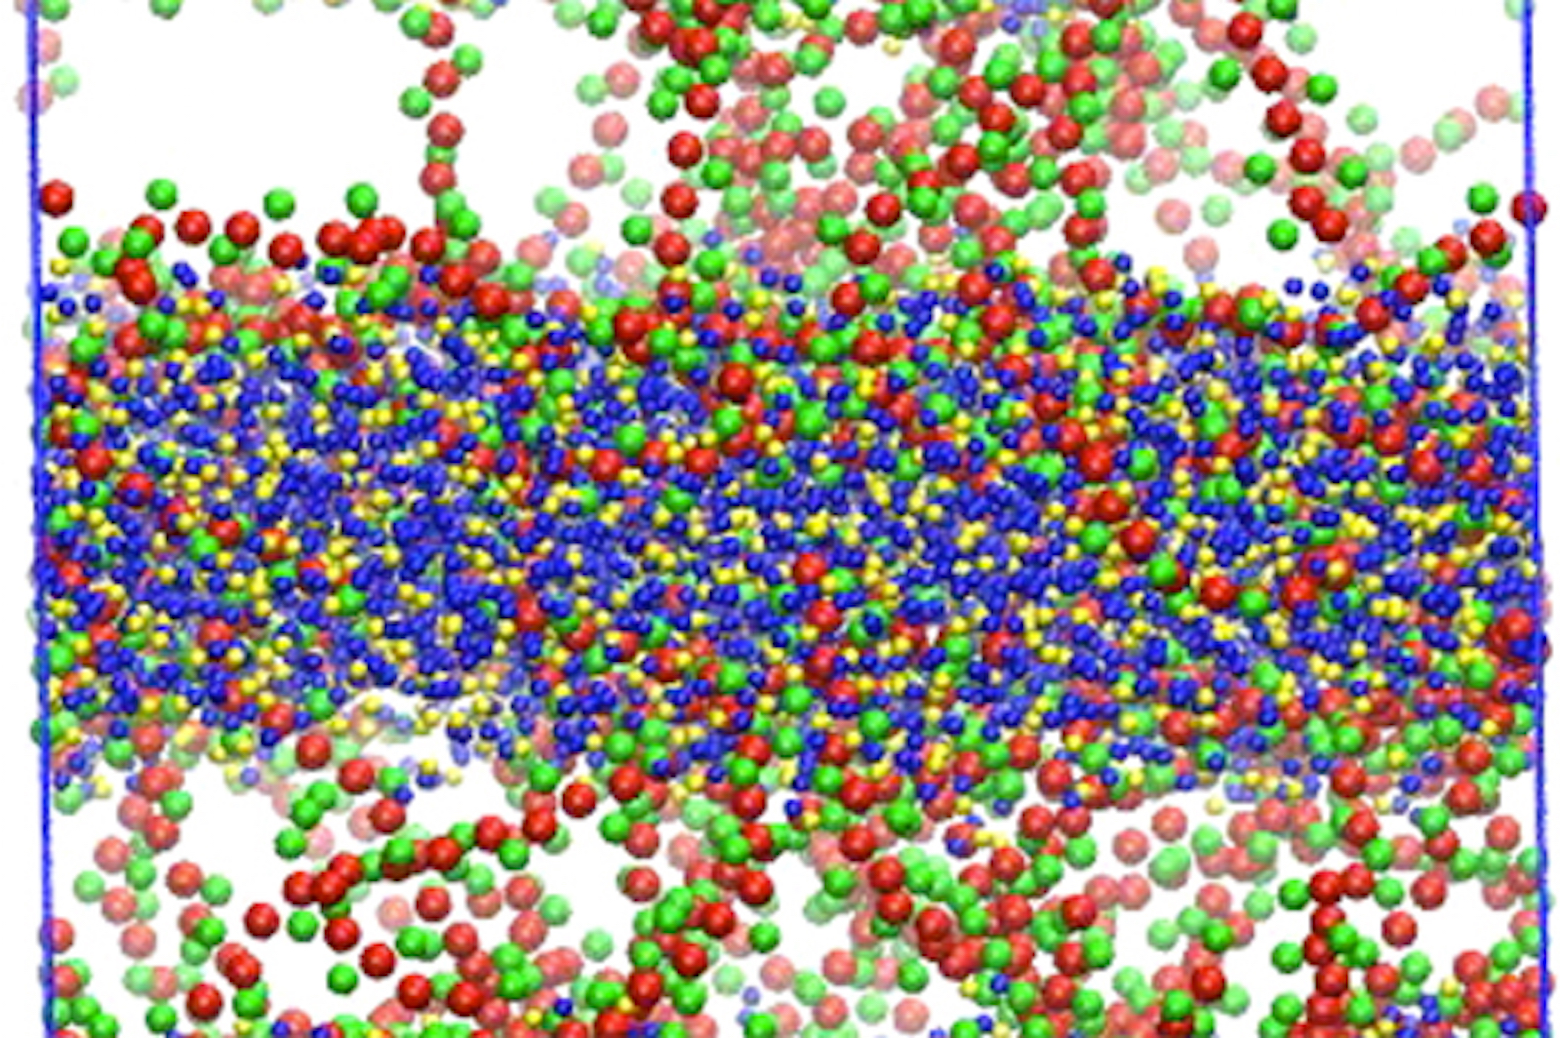 Green and red polymers help keep maize and blue drug molecules from crystallizing